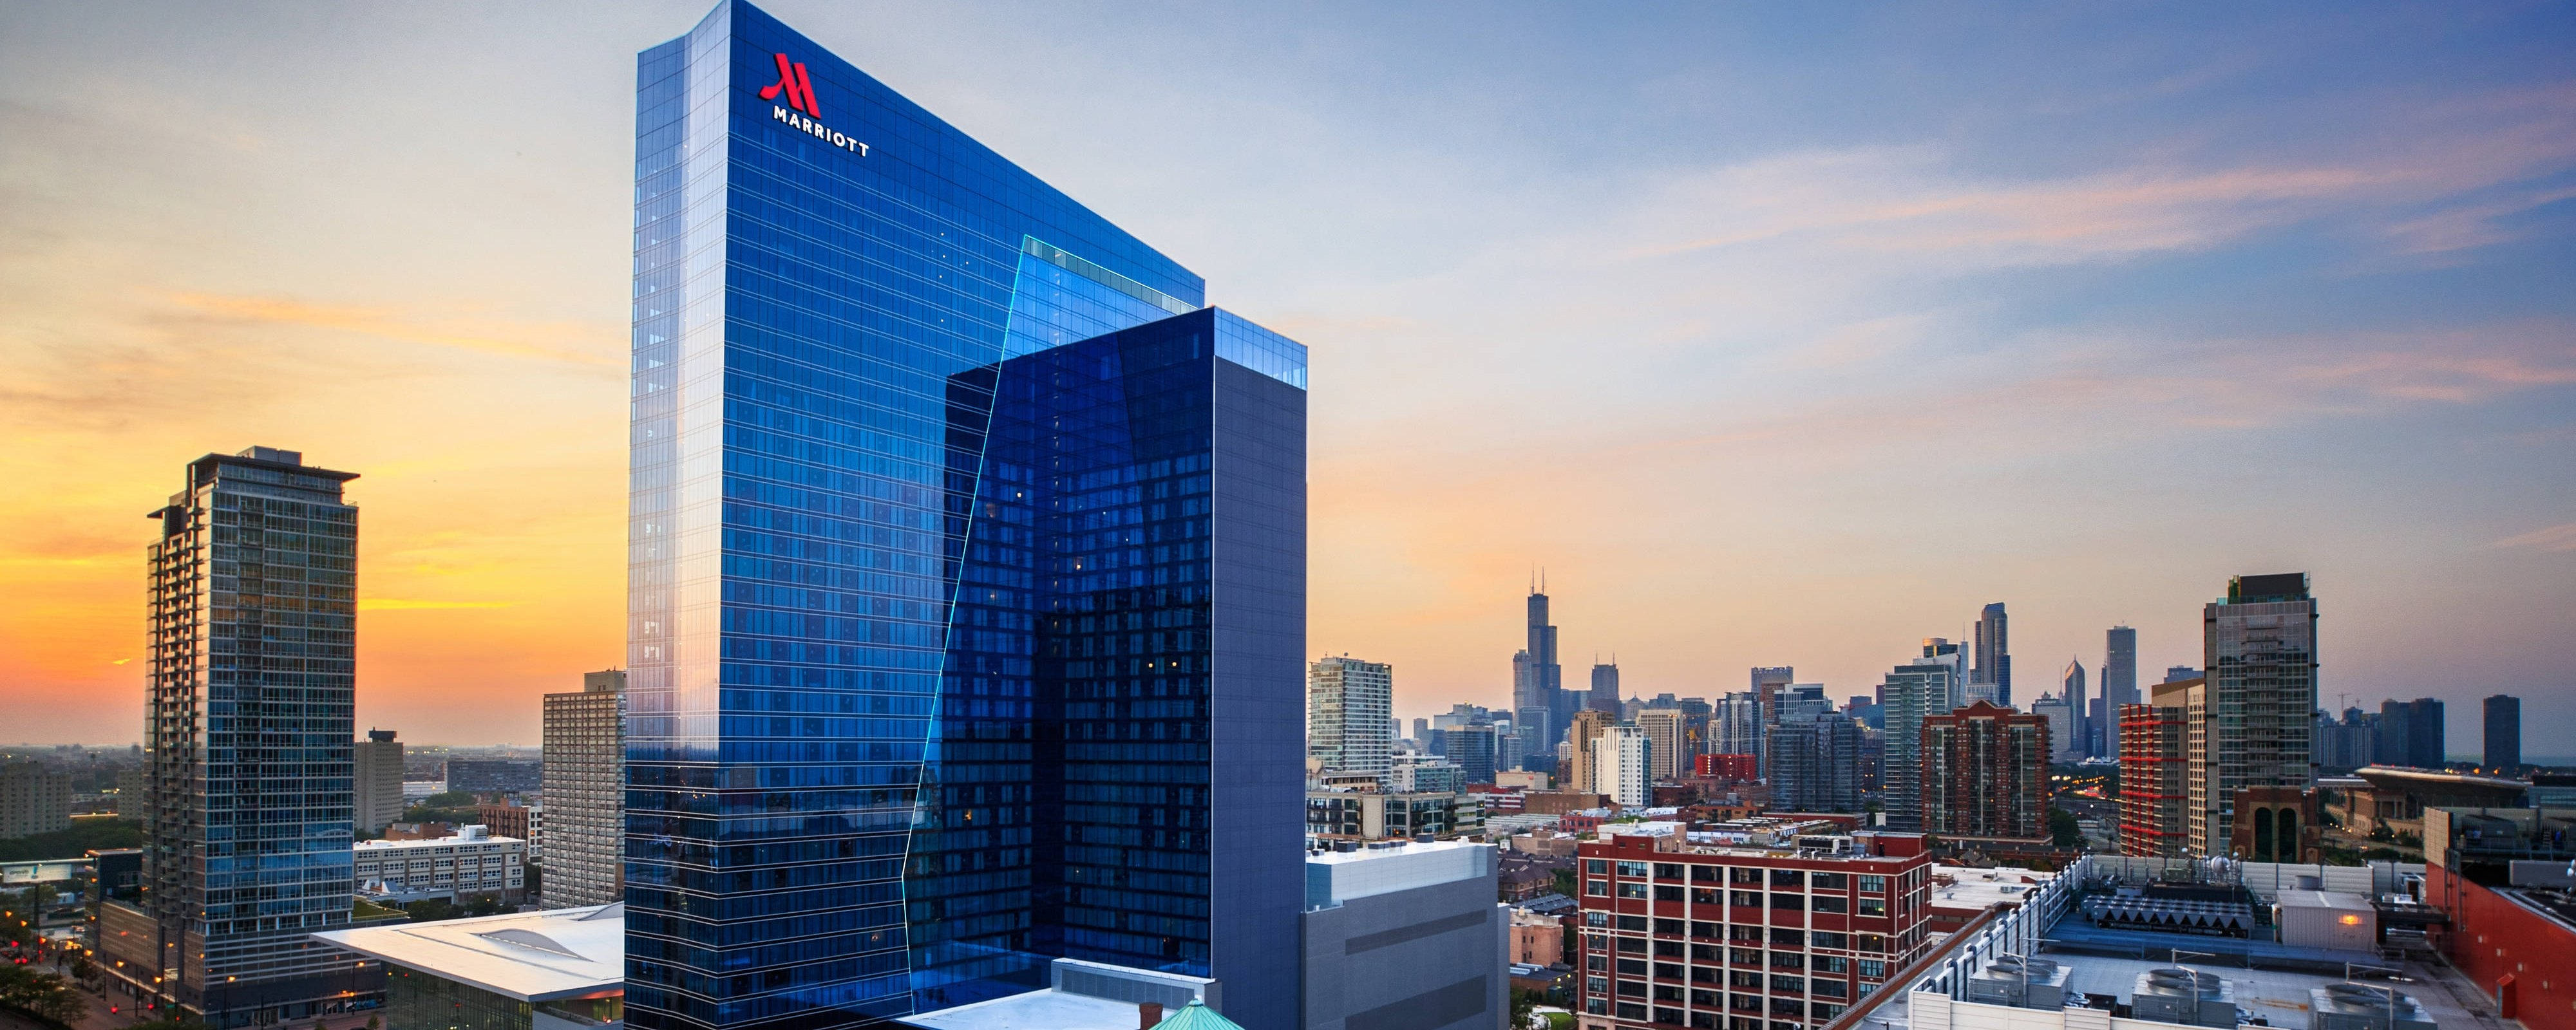 Four Star Hotel Near Mccormick Place Marriott Marquis Chicago